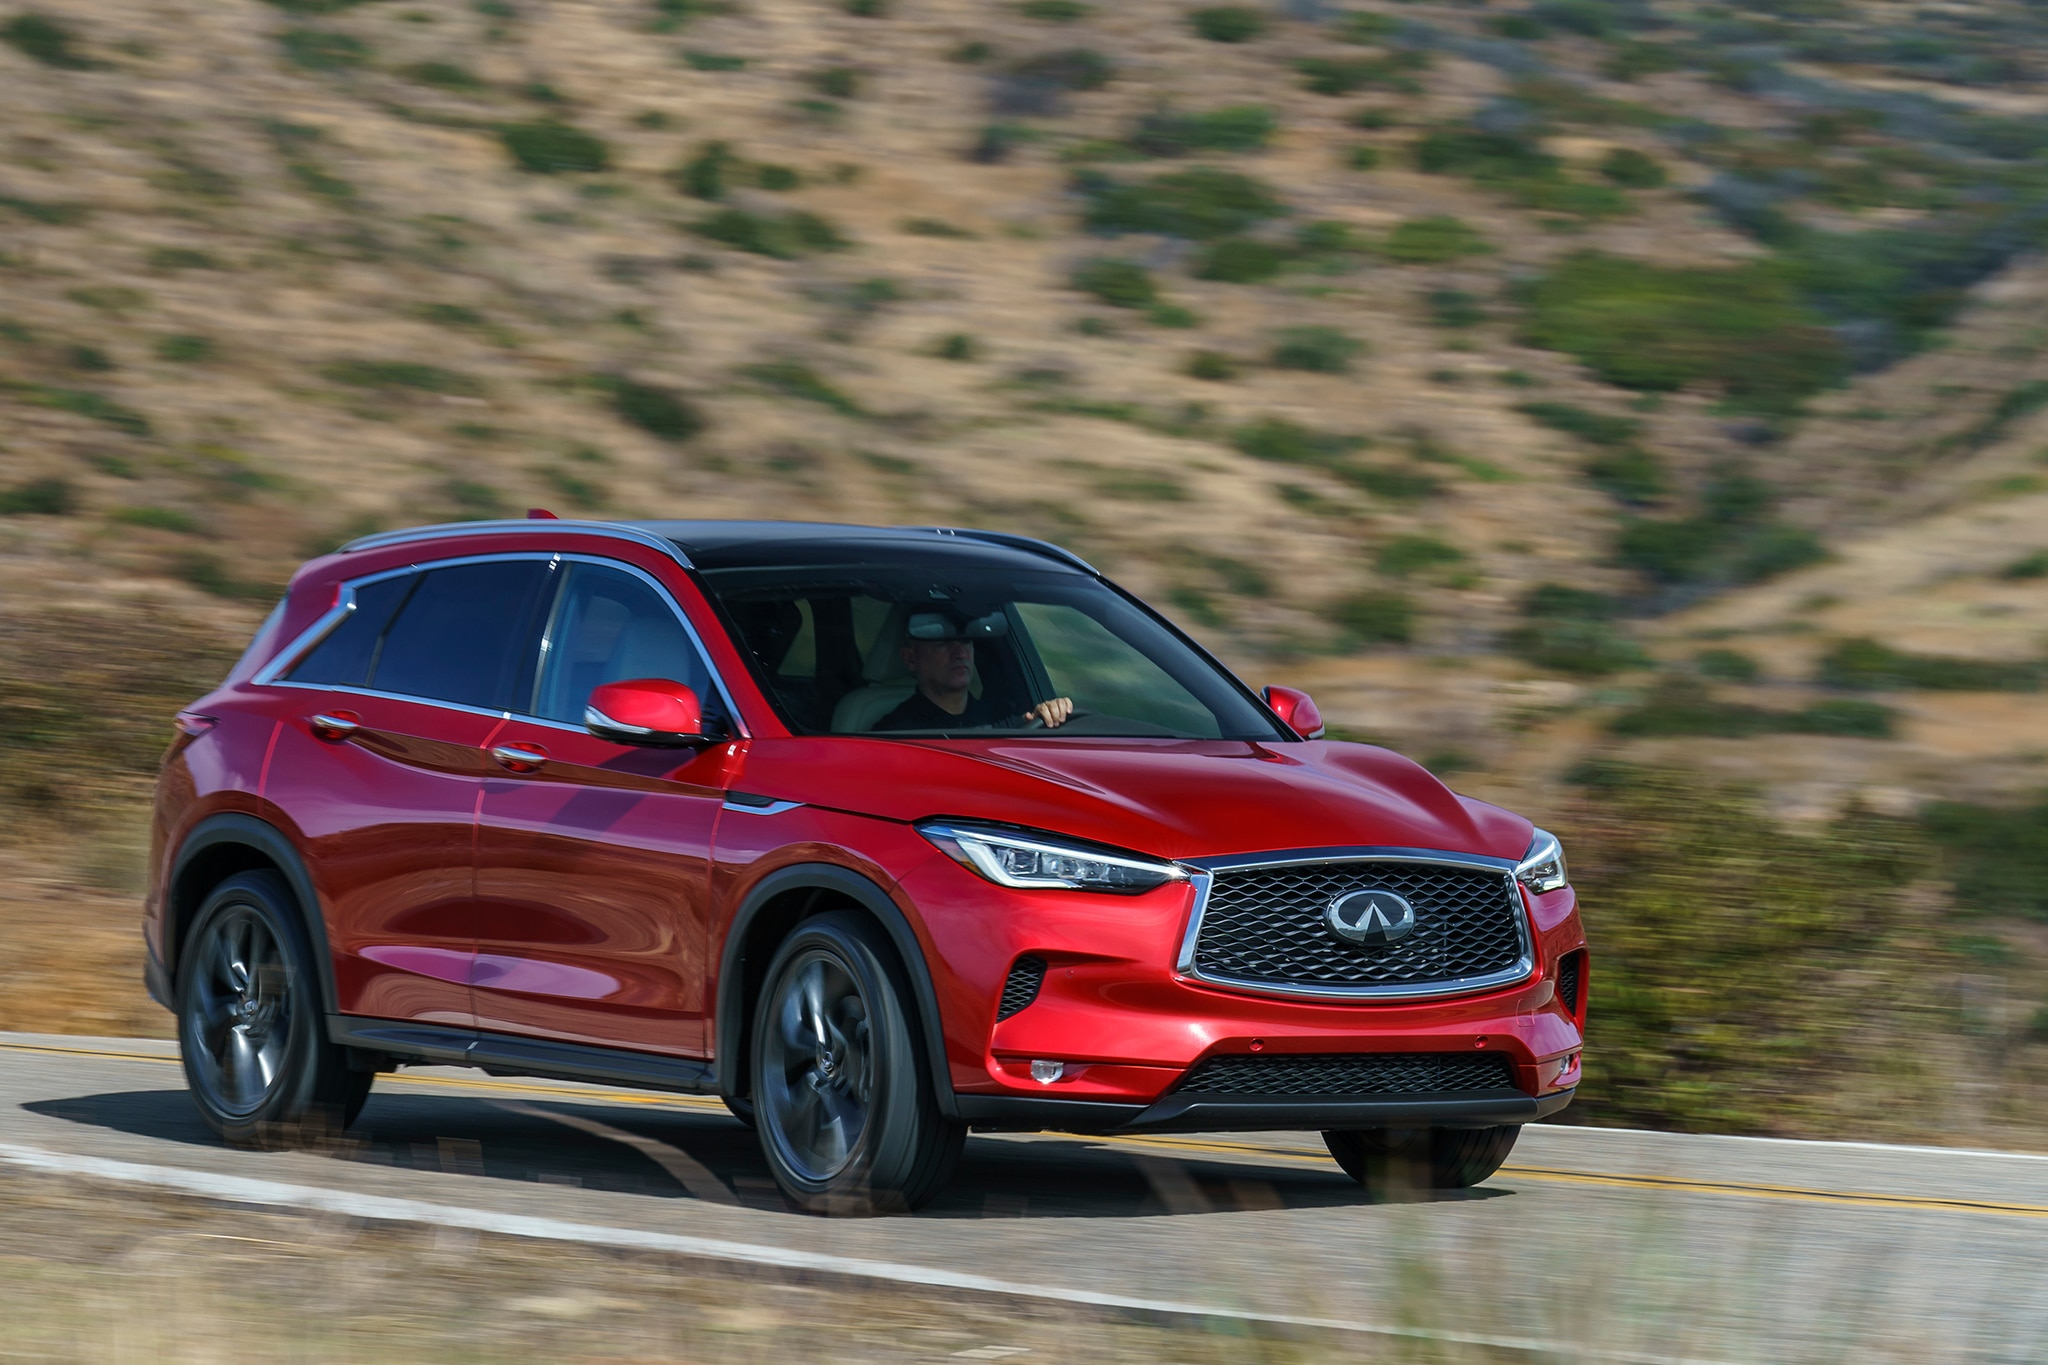 Qx50 For Sale >> 2019 Infiniti QX50 First Drive Review | Automobile Magazine